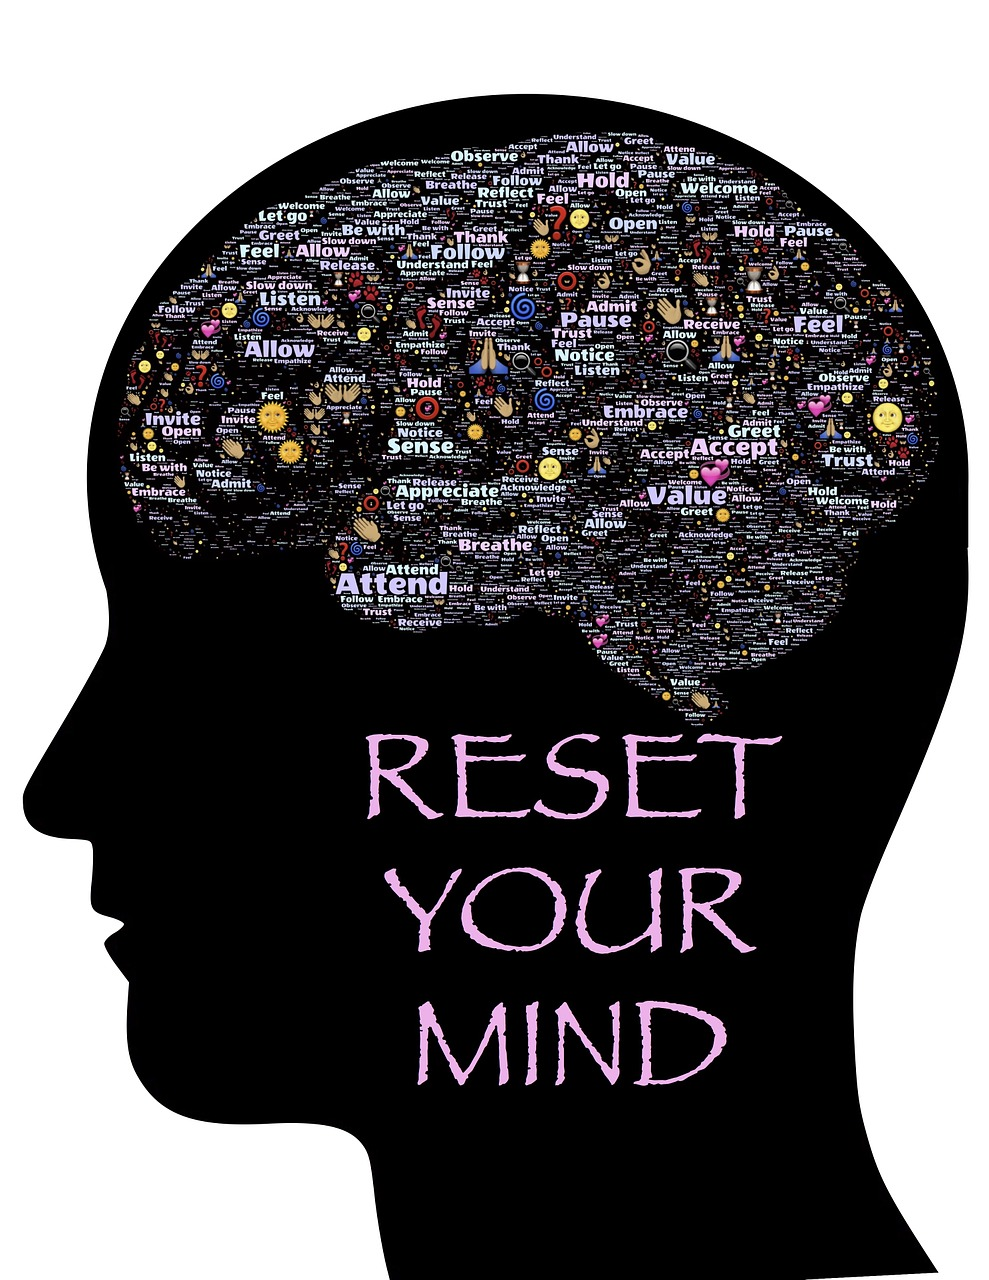 Reset your mind met Mindfulness